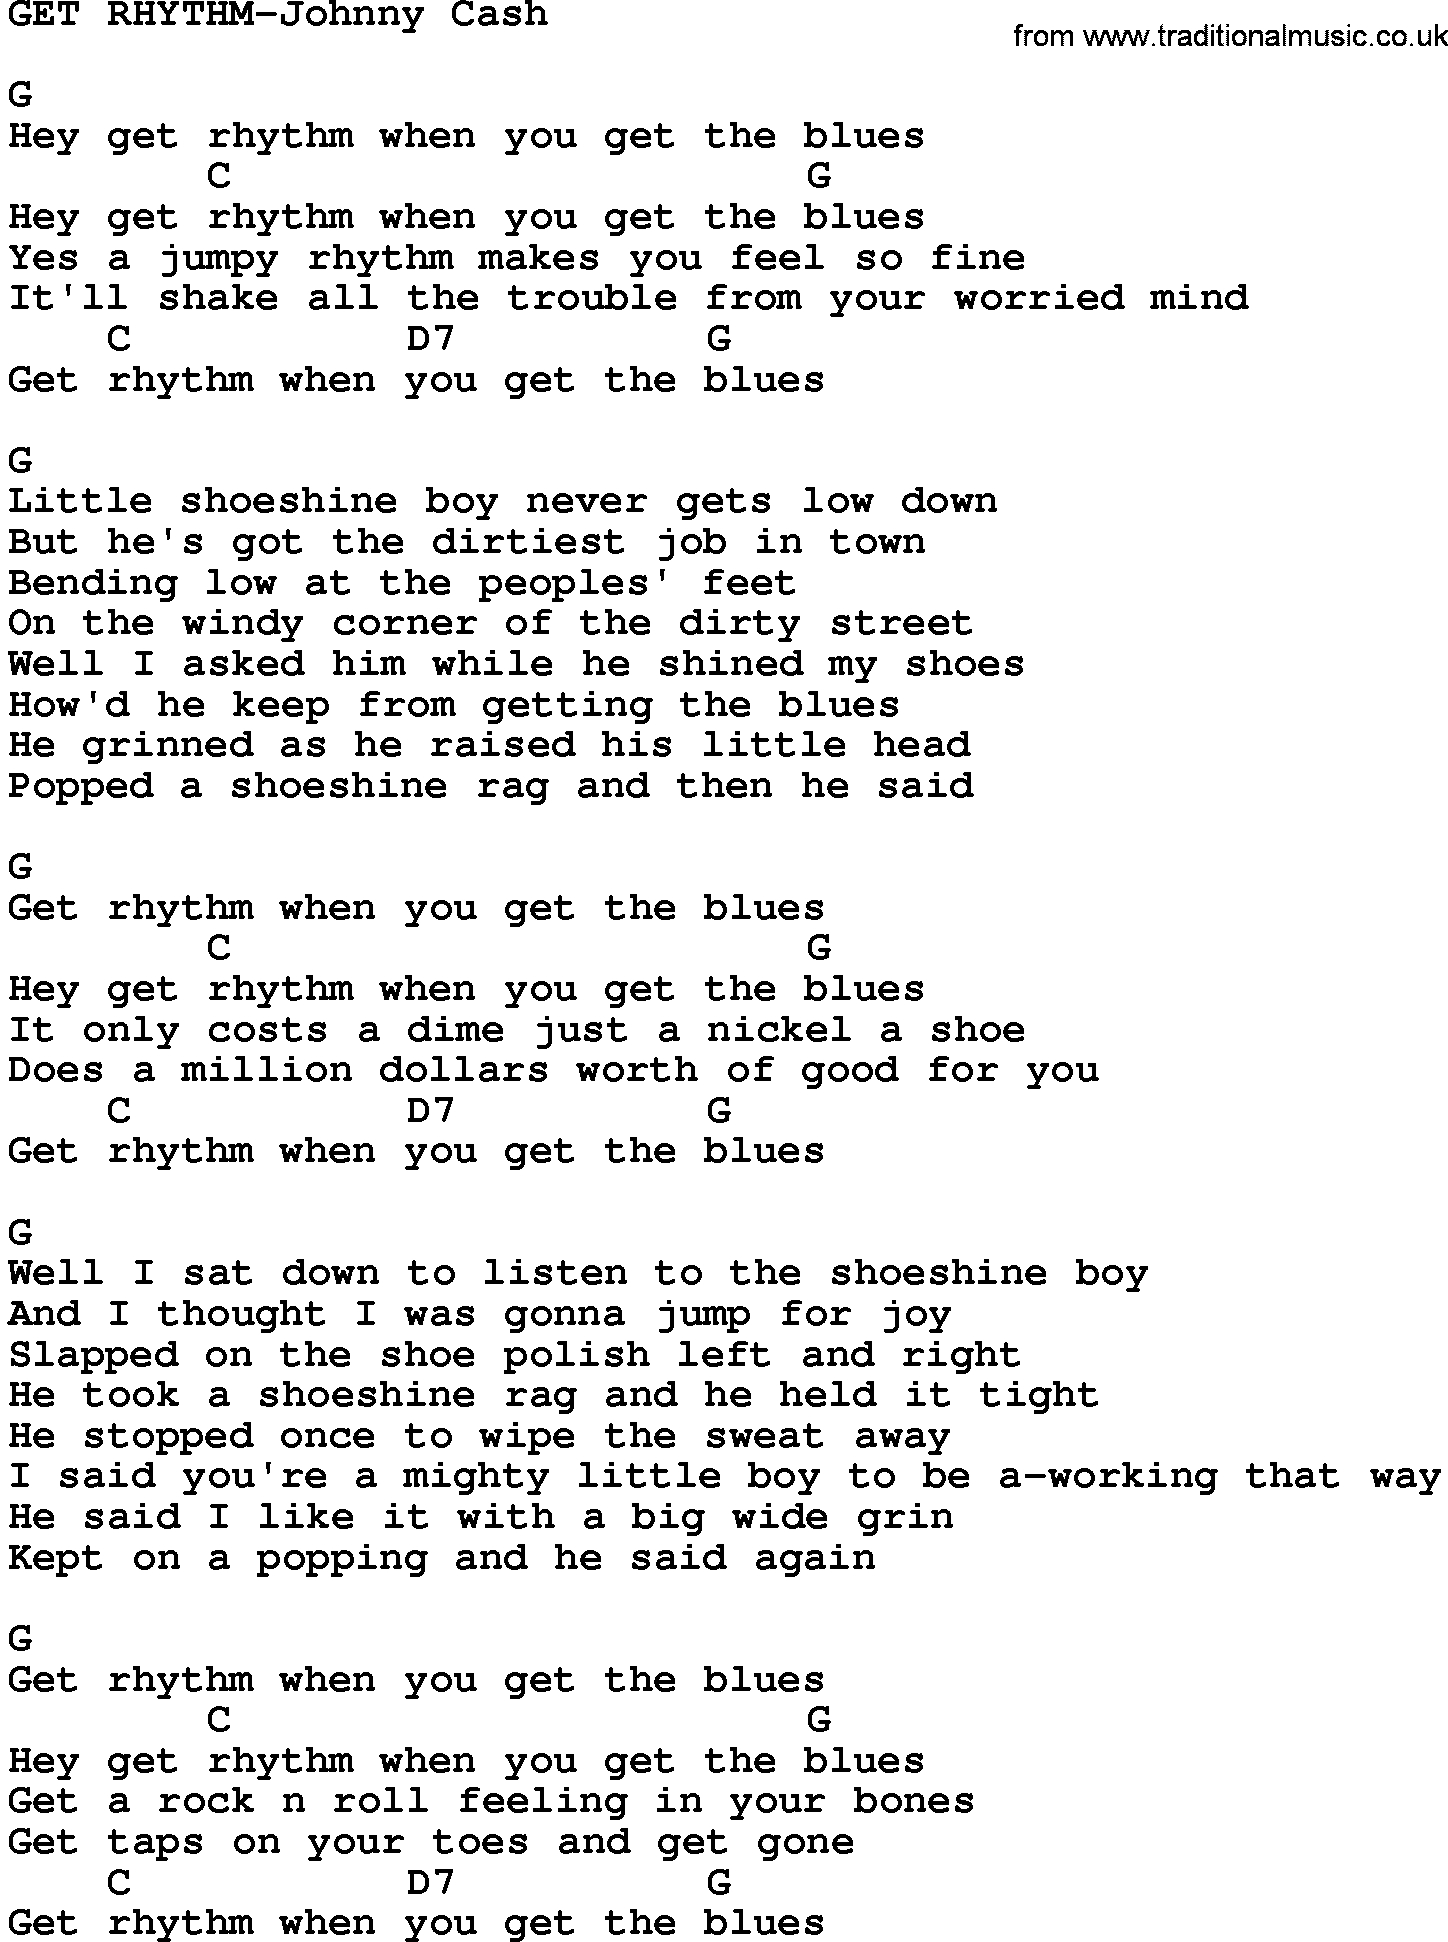 Country musicget rhythm johnny cash lyrics and chords hexwebz Image collections